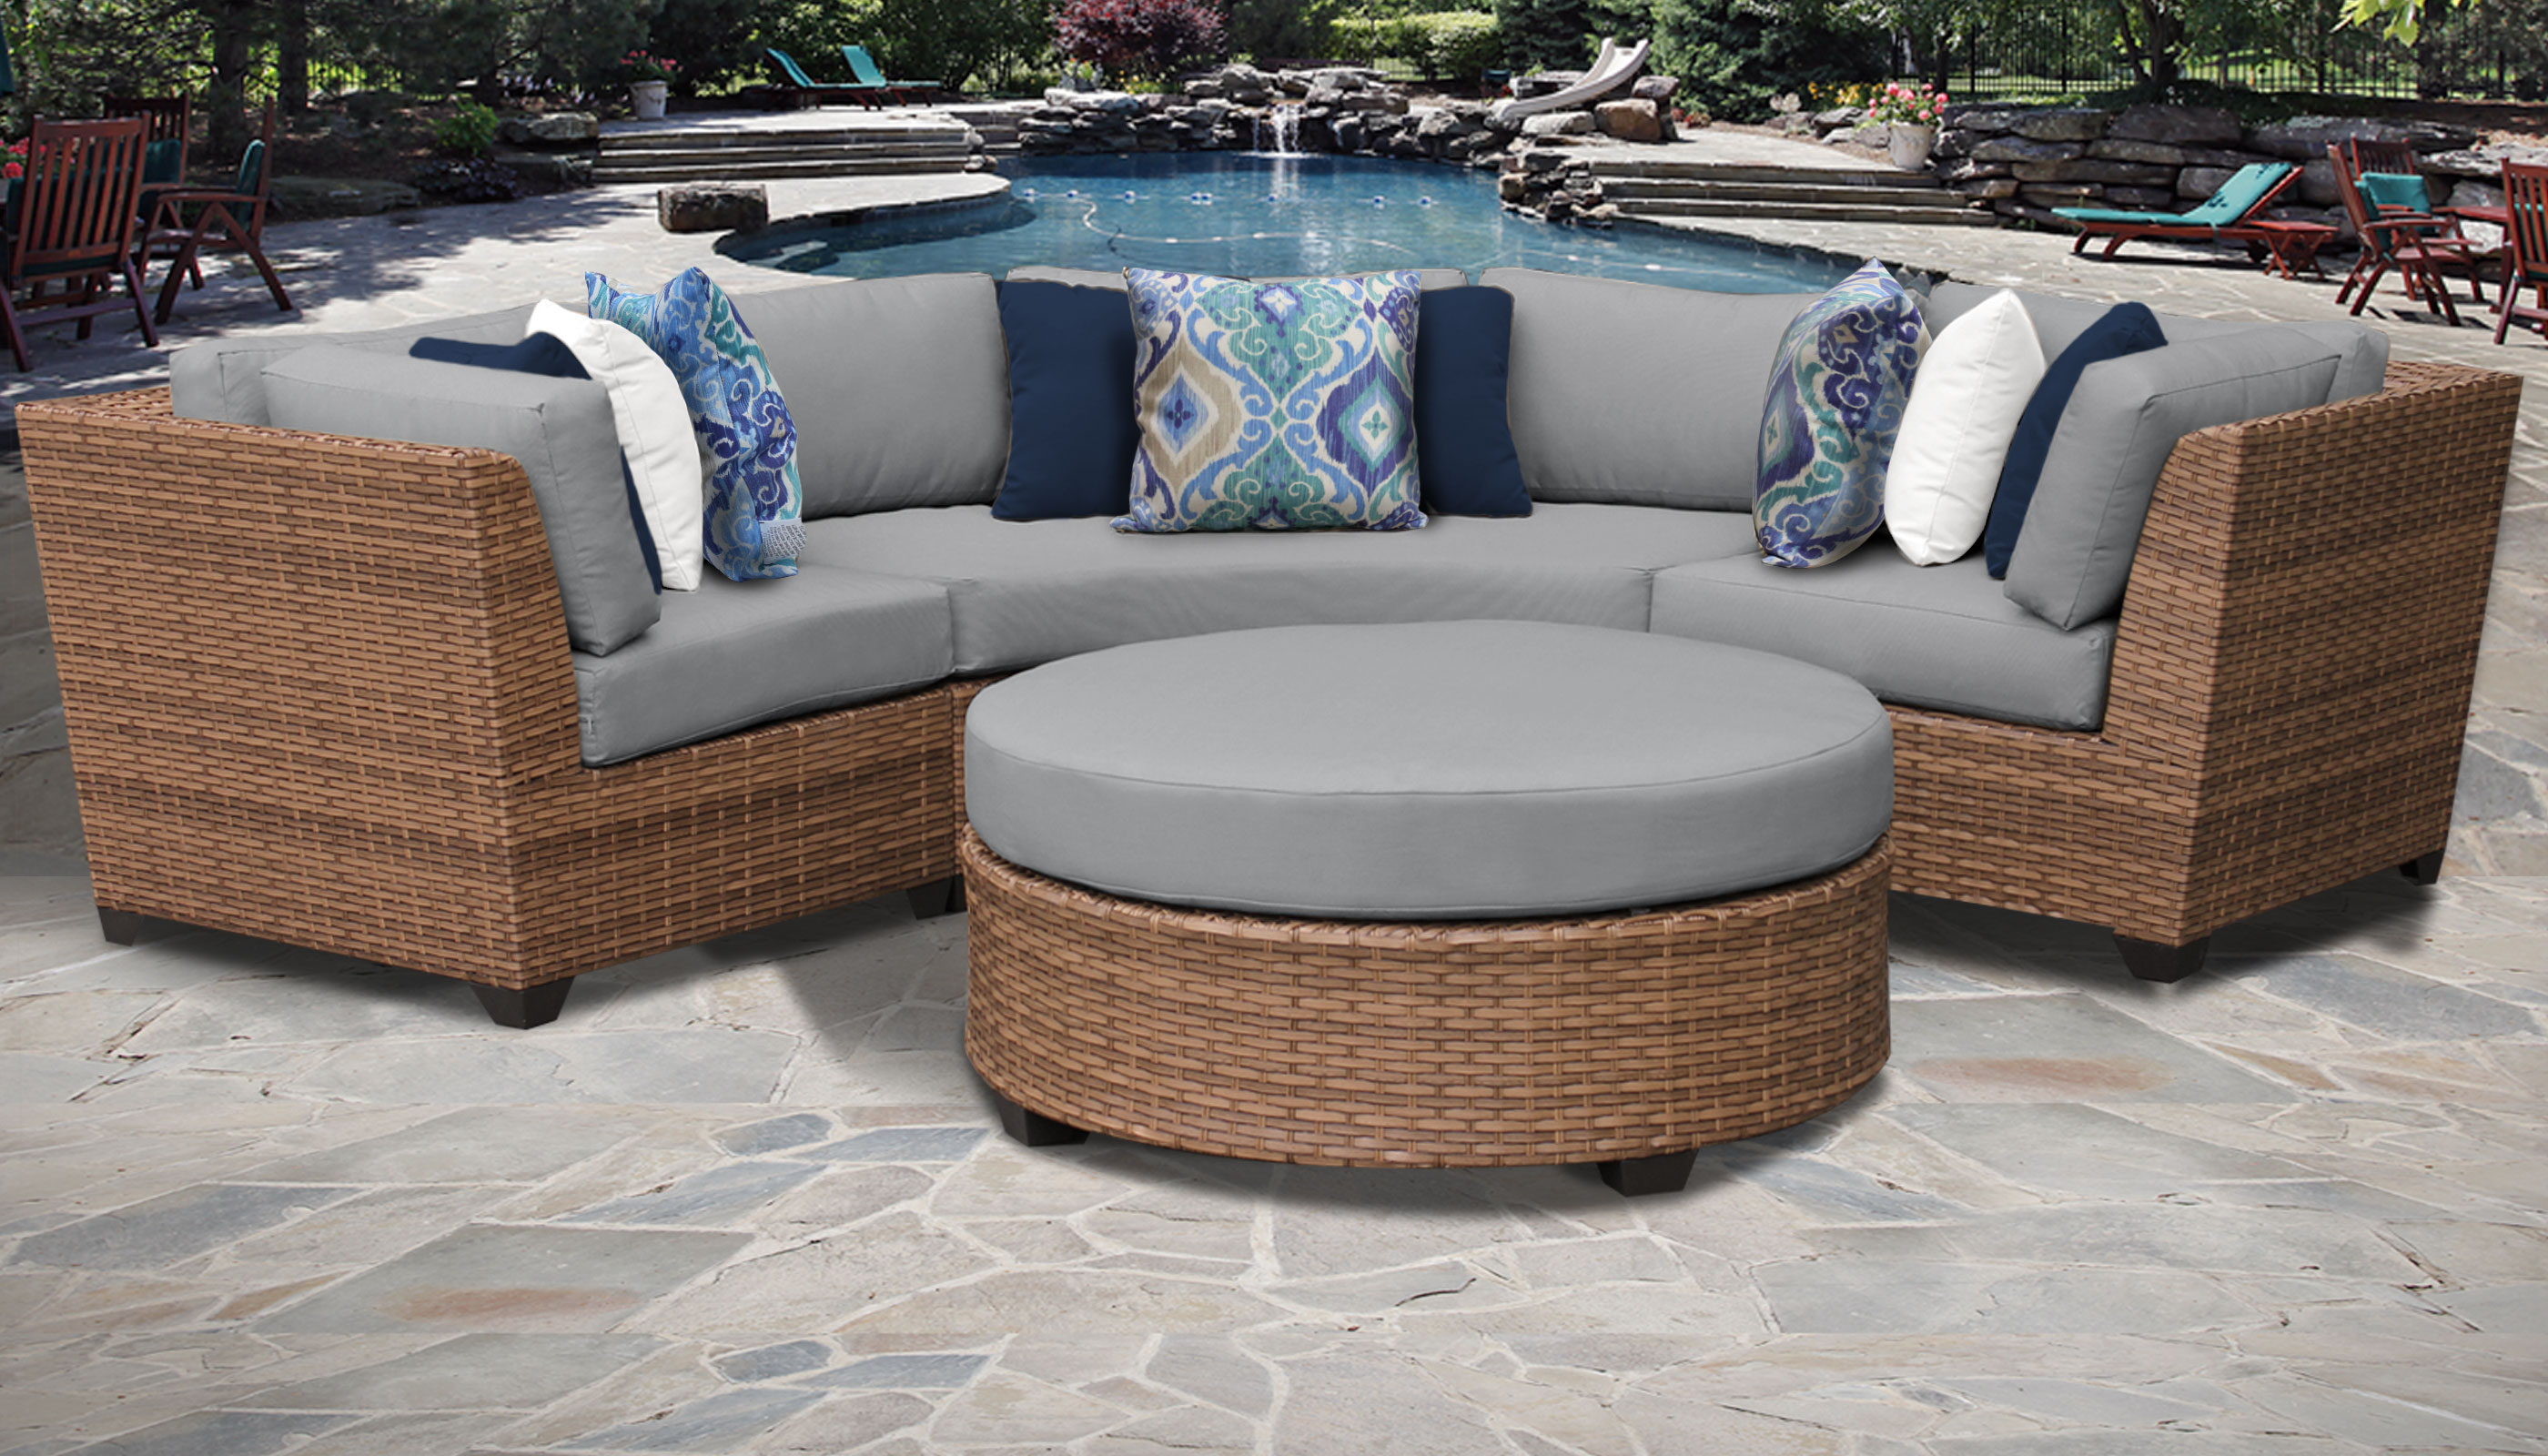 Most Current Laguna Outdoor Sofas With Cushions Within Laguna 4 Piece Outdoor Wicker Patio Furniture Set 04A (View 13 of 20)